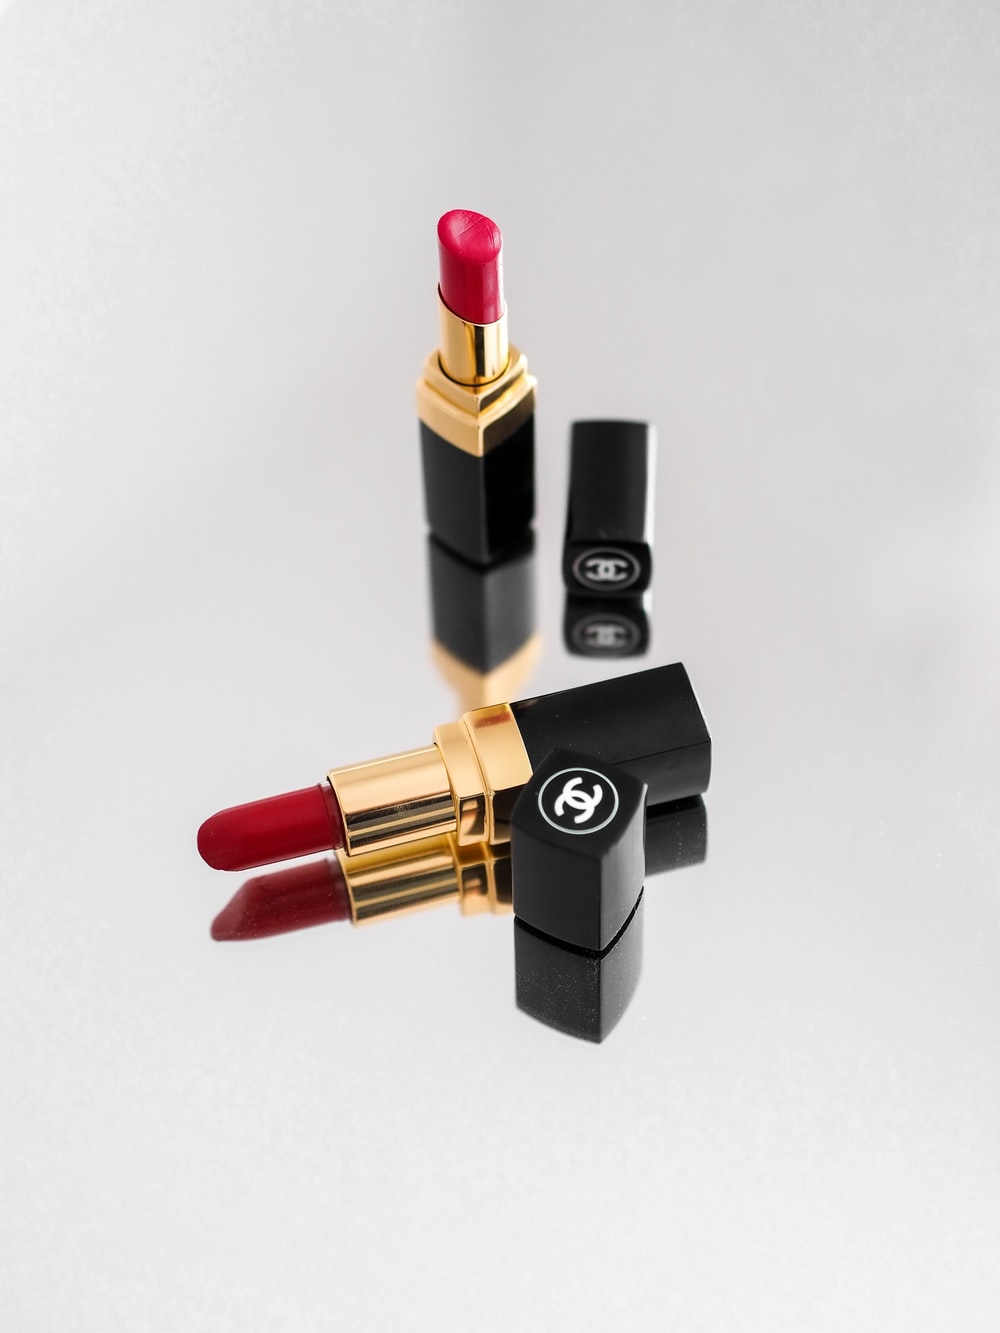 red lipstick beside black and gold lipstick